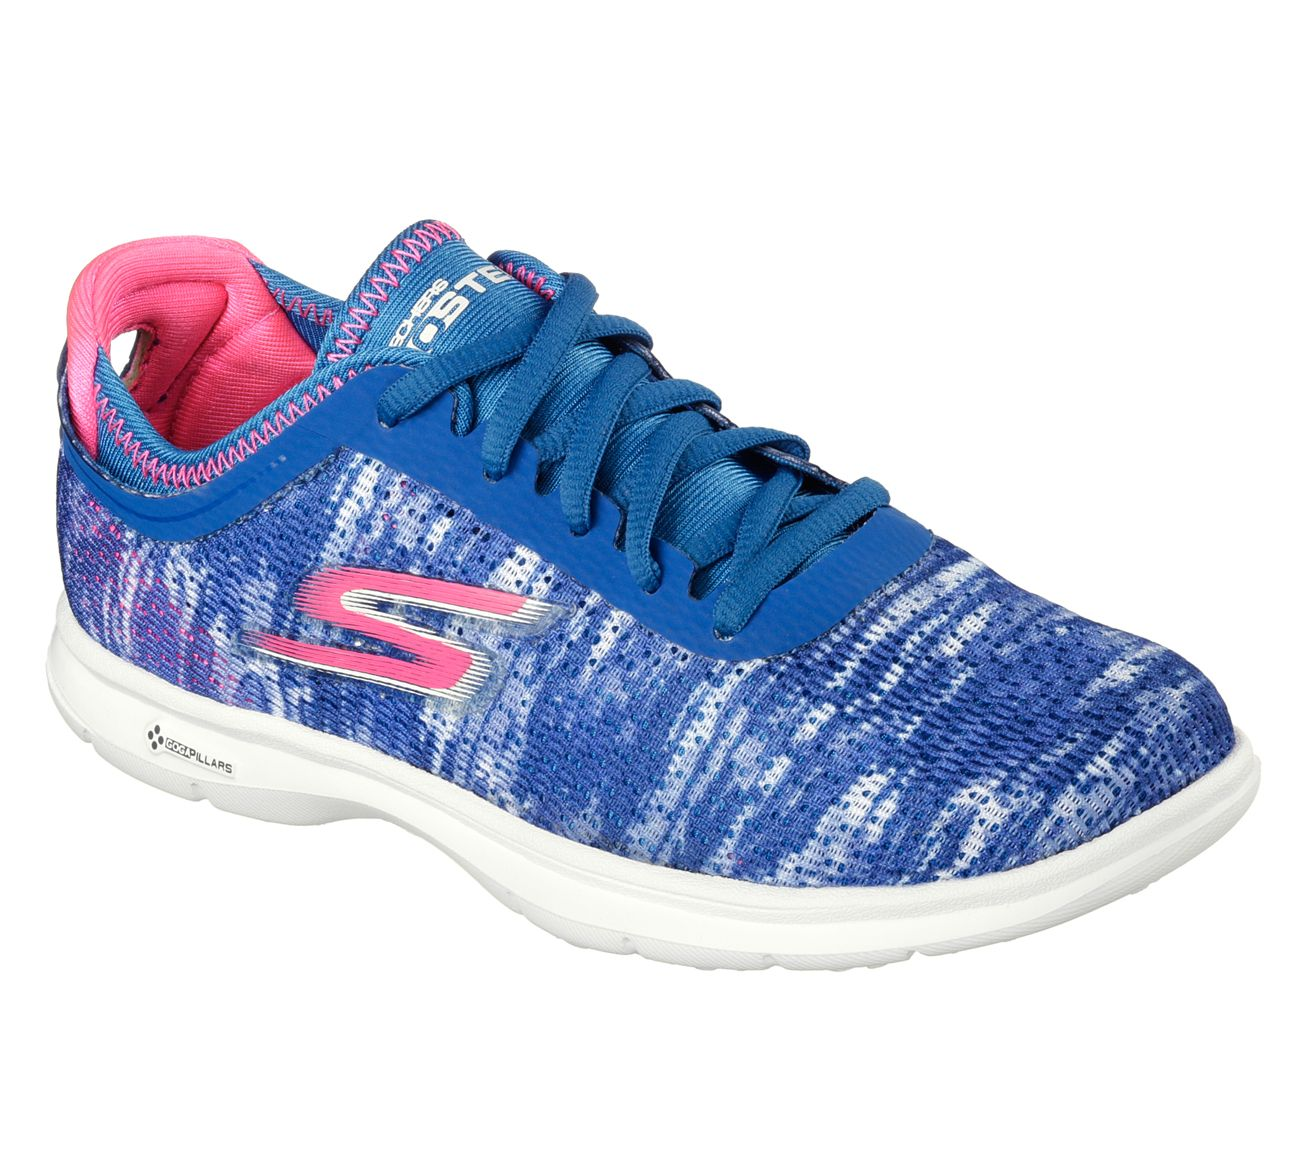 Skechers Women Go Step Blue And Pink Inspired by our Skechers GOwalk 3  platform the Skechers GO STEP combines innovation and style in a modern